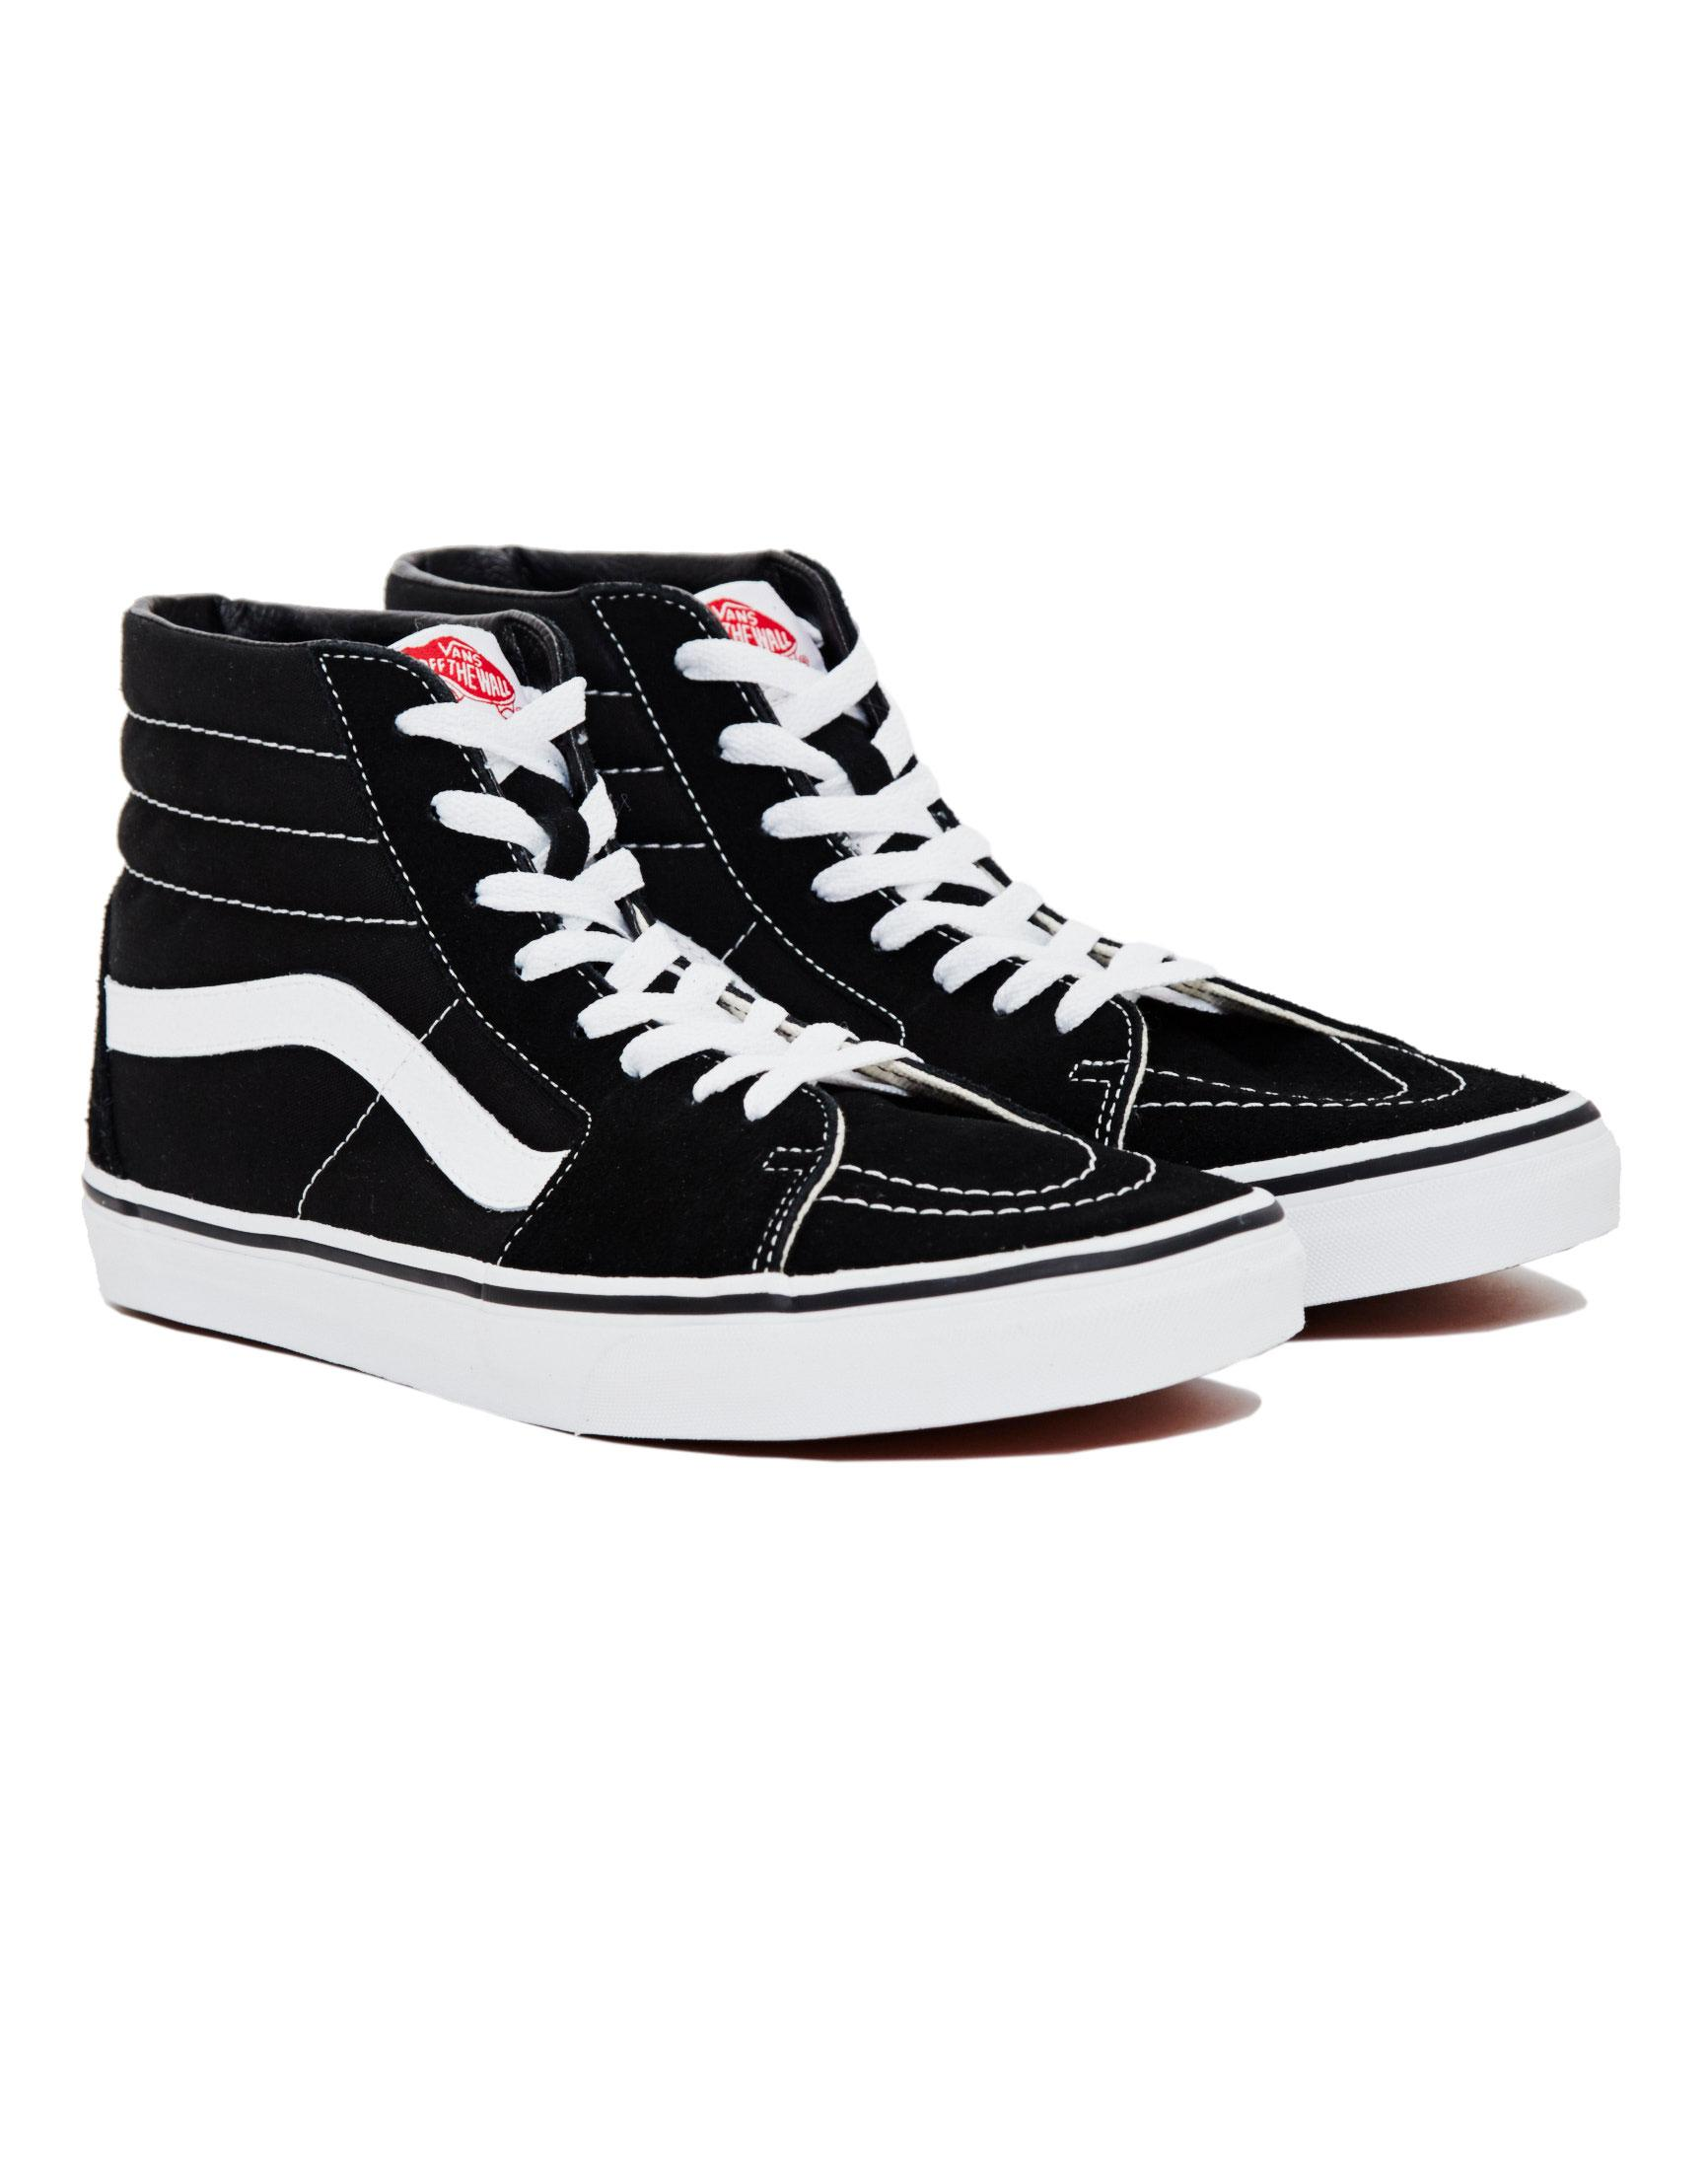 0743149b06 Lyst - Vans Sk8-hi Trainers Black in Black for Men